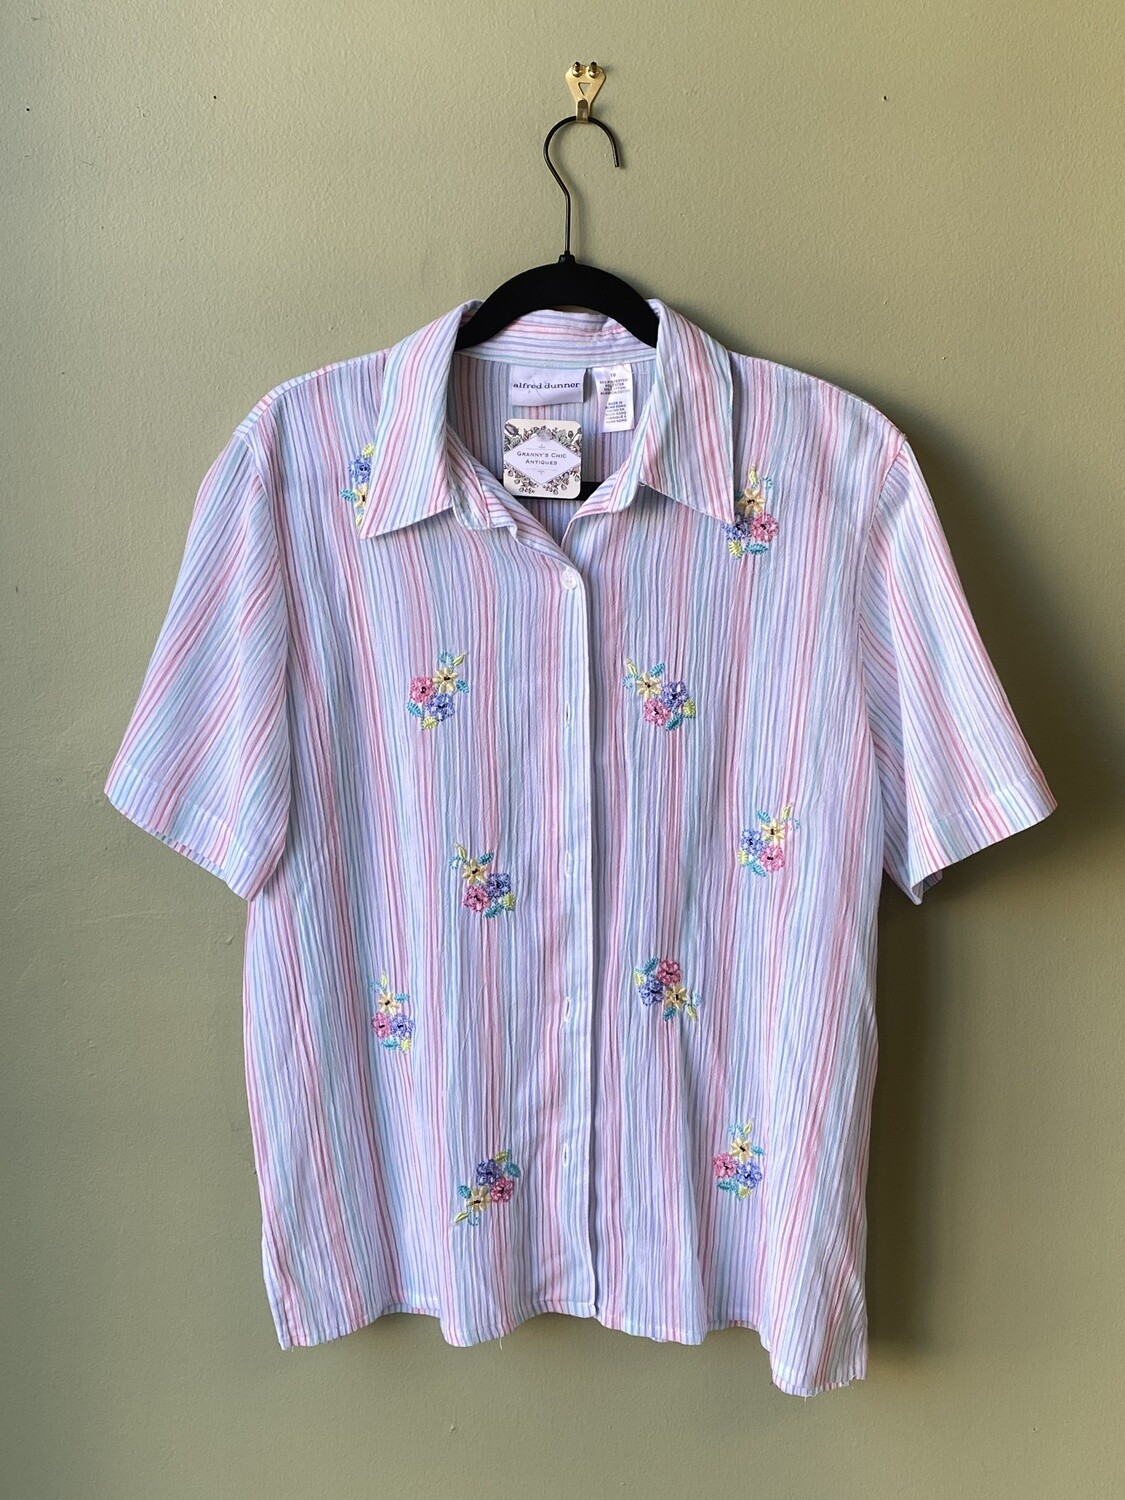 Alfred Dunner Striped Shirt, Size 10